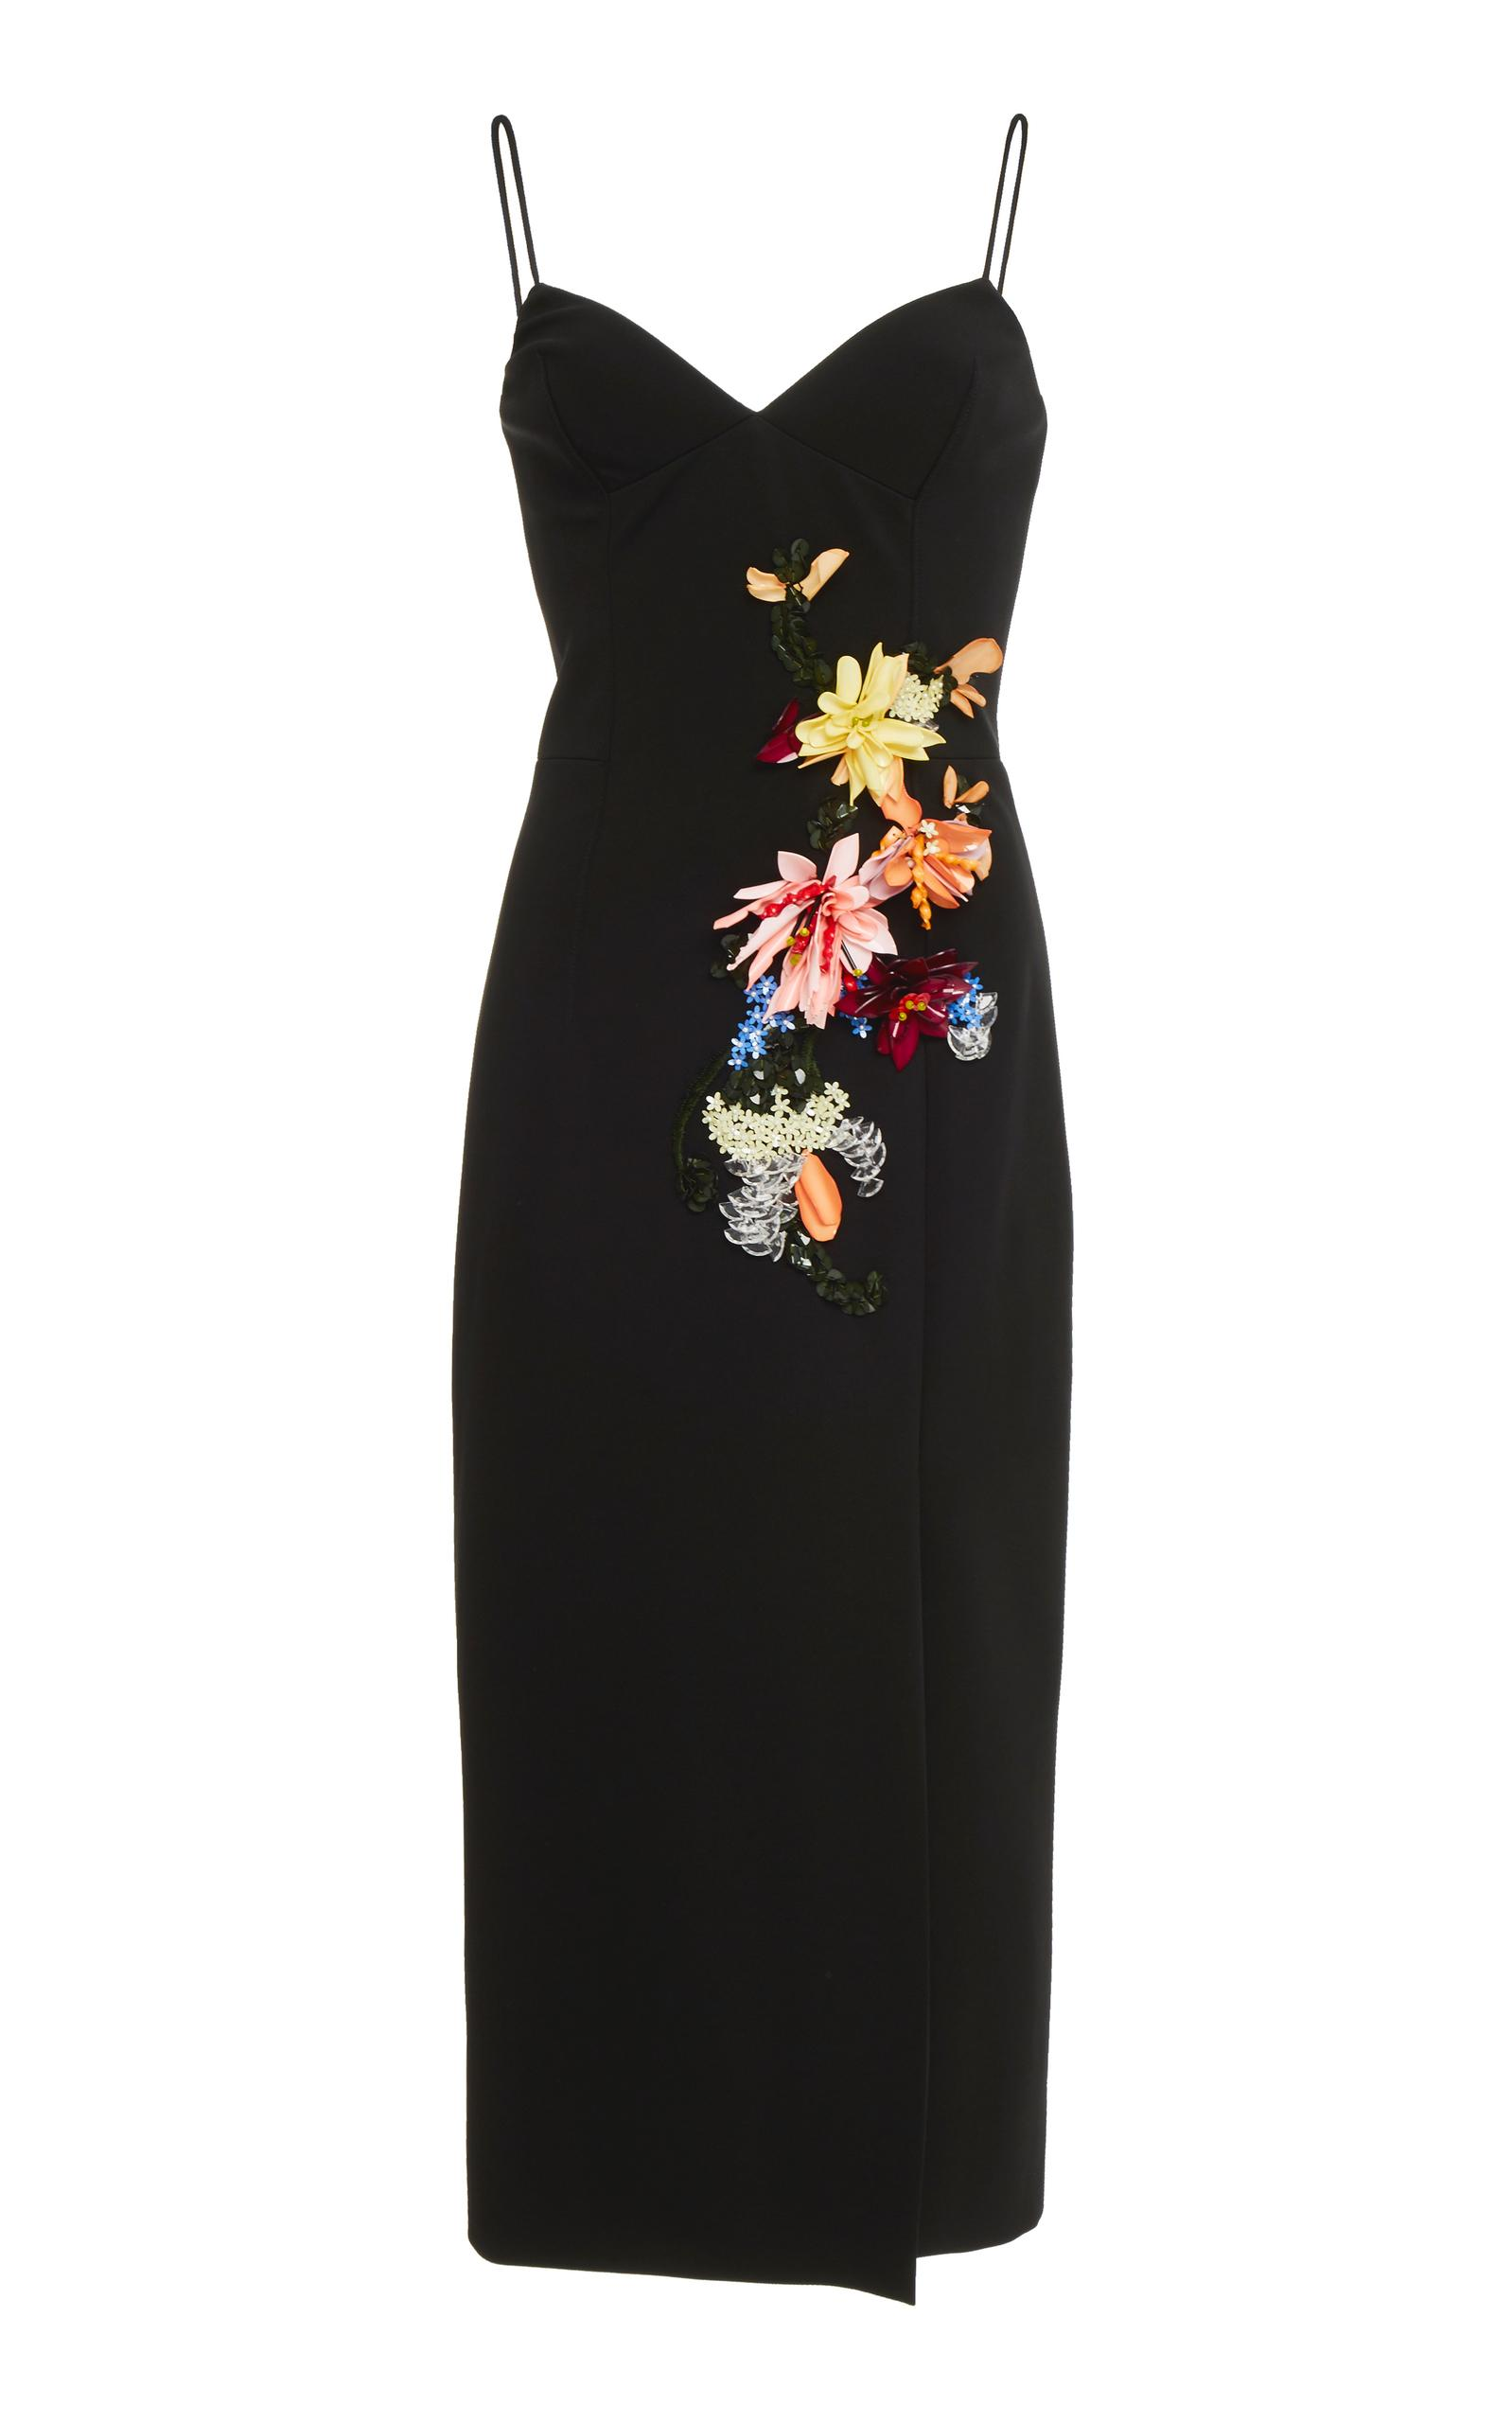 Cushnie Et Ochs Ivana Camisole Cocktail Dress W/ 3-D Floral-Embroidery In Black